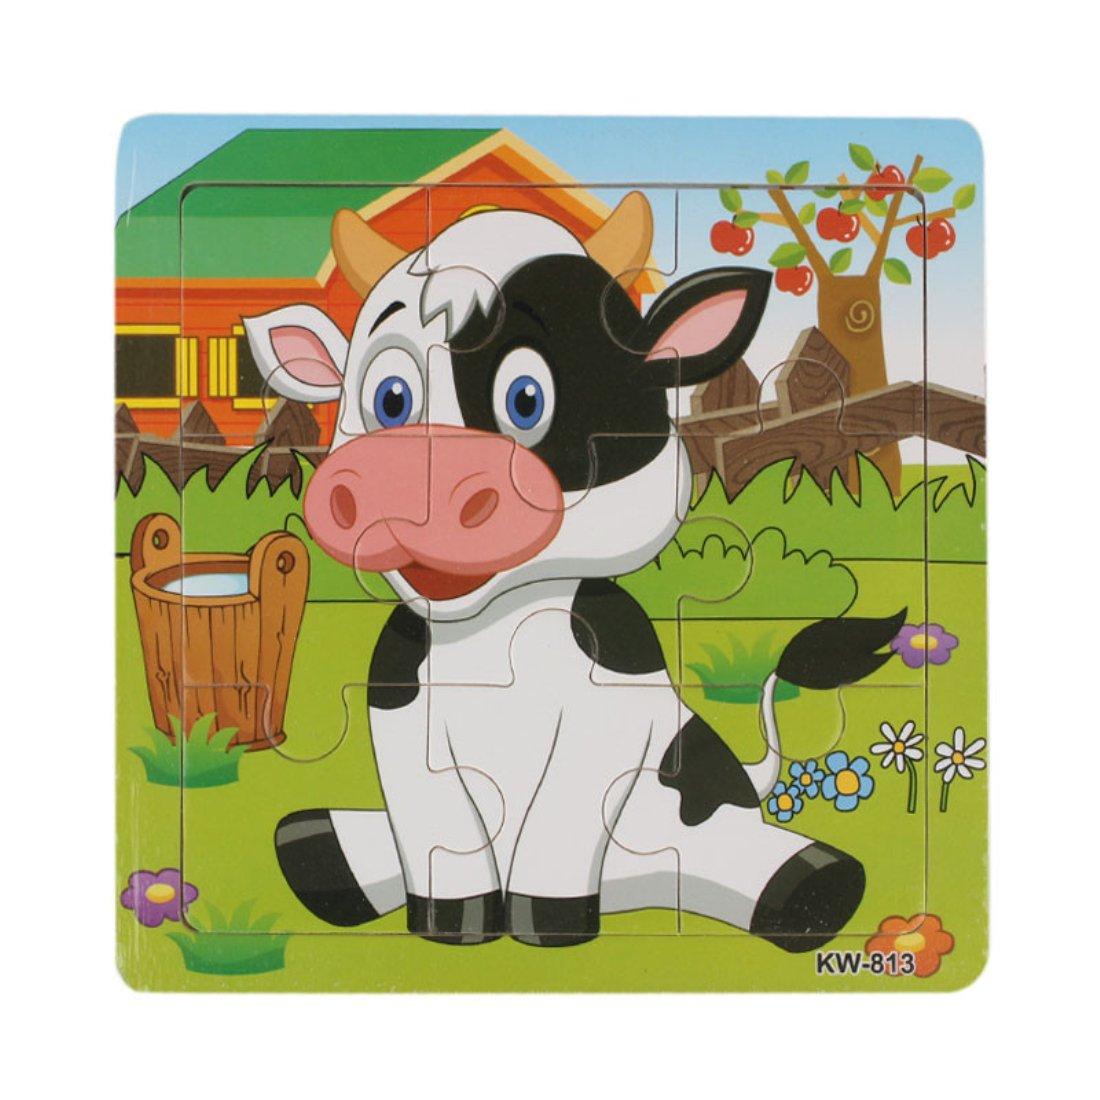 Voberry Wooden Dairy Cow Jigsaw Toys For Kids Education And Learning Puzzles Toys